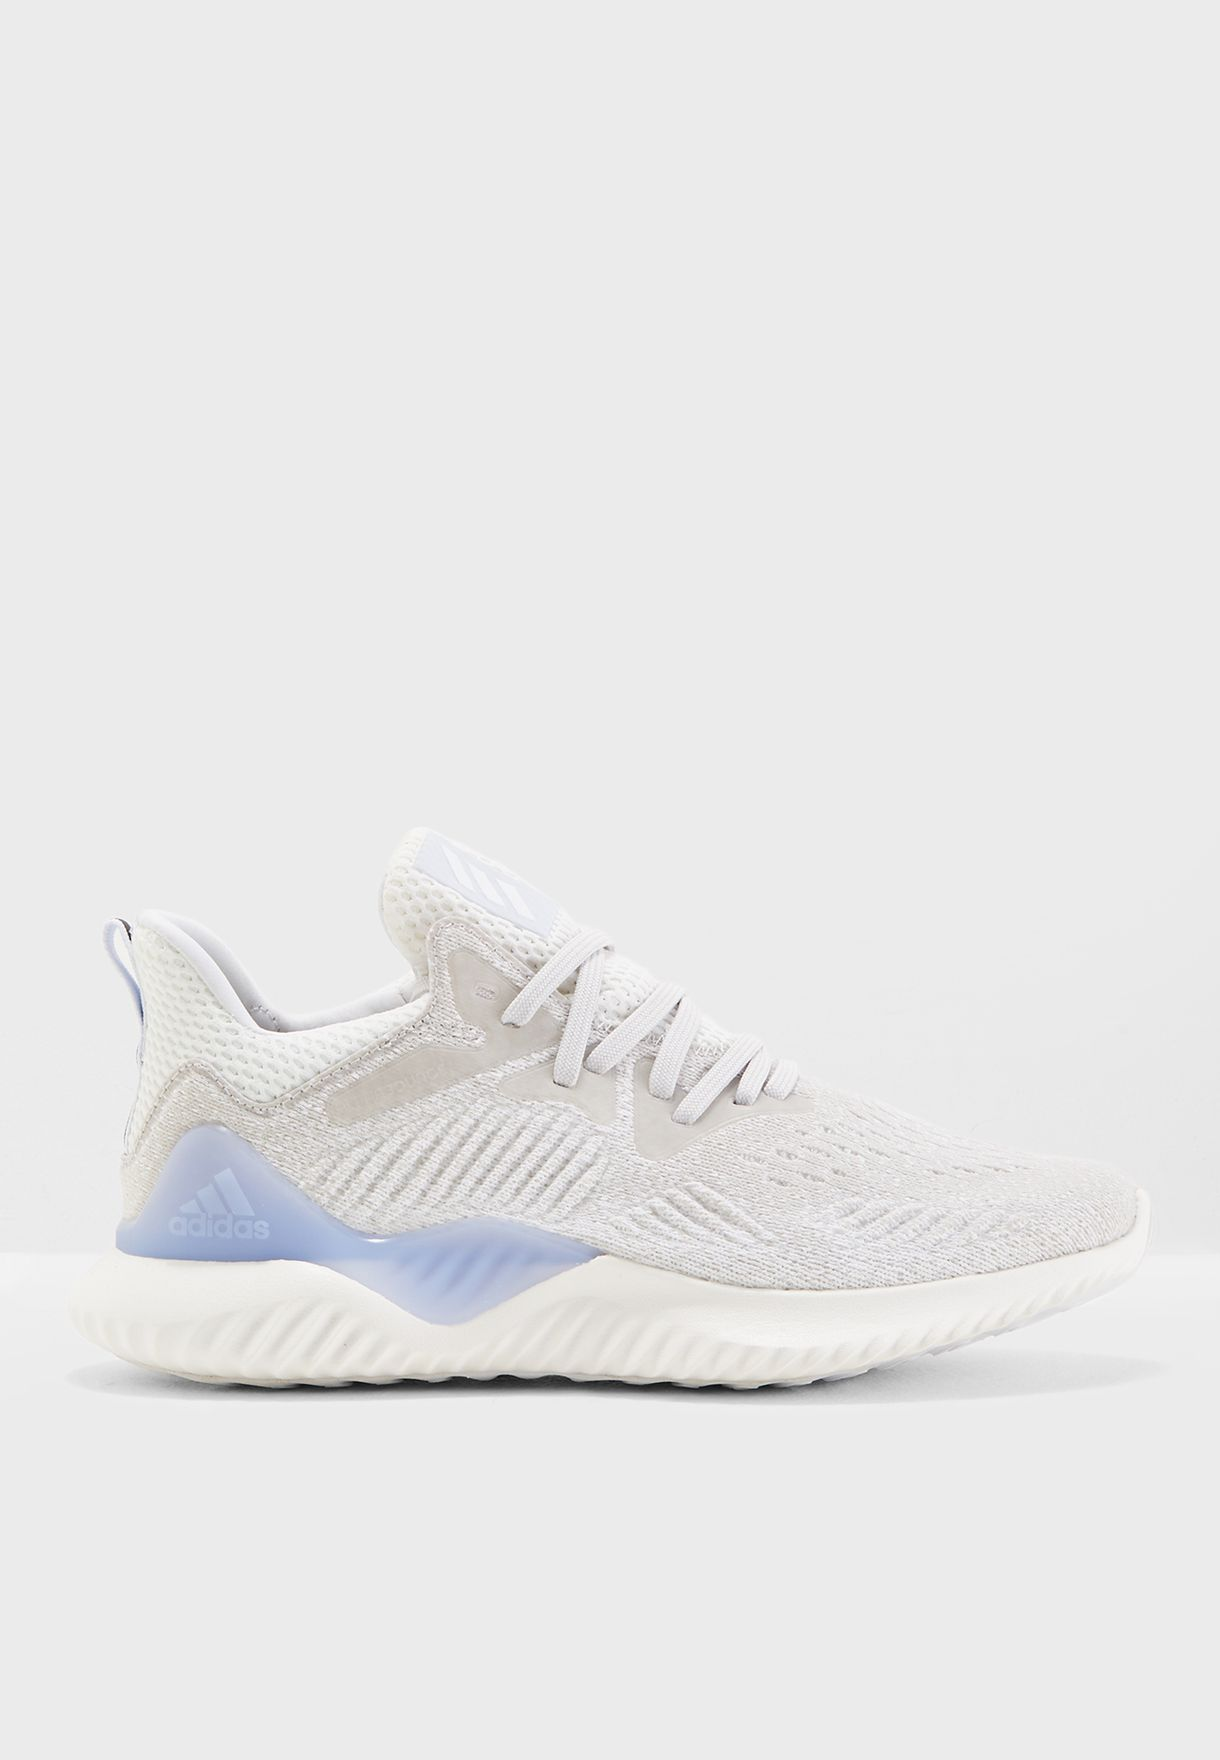 c5a1ffe57d516 Shop adidas white Alphabounce Beyond AQ0572 for Men in UAE ...